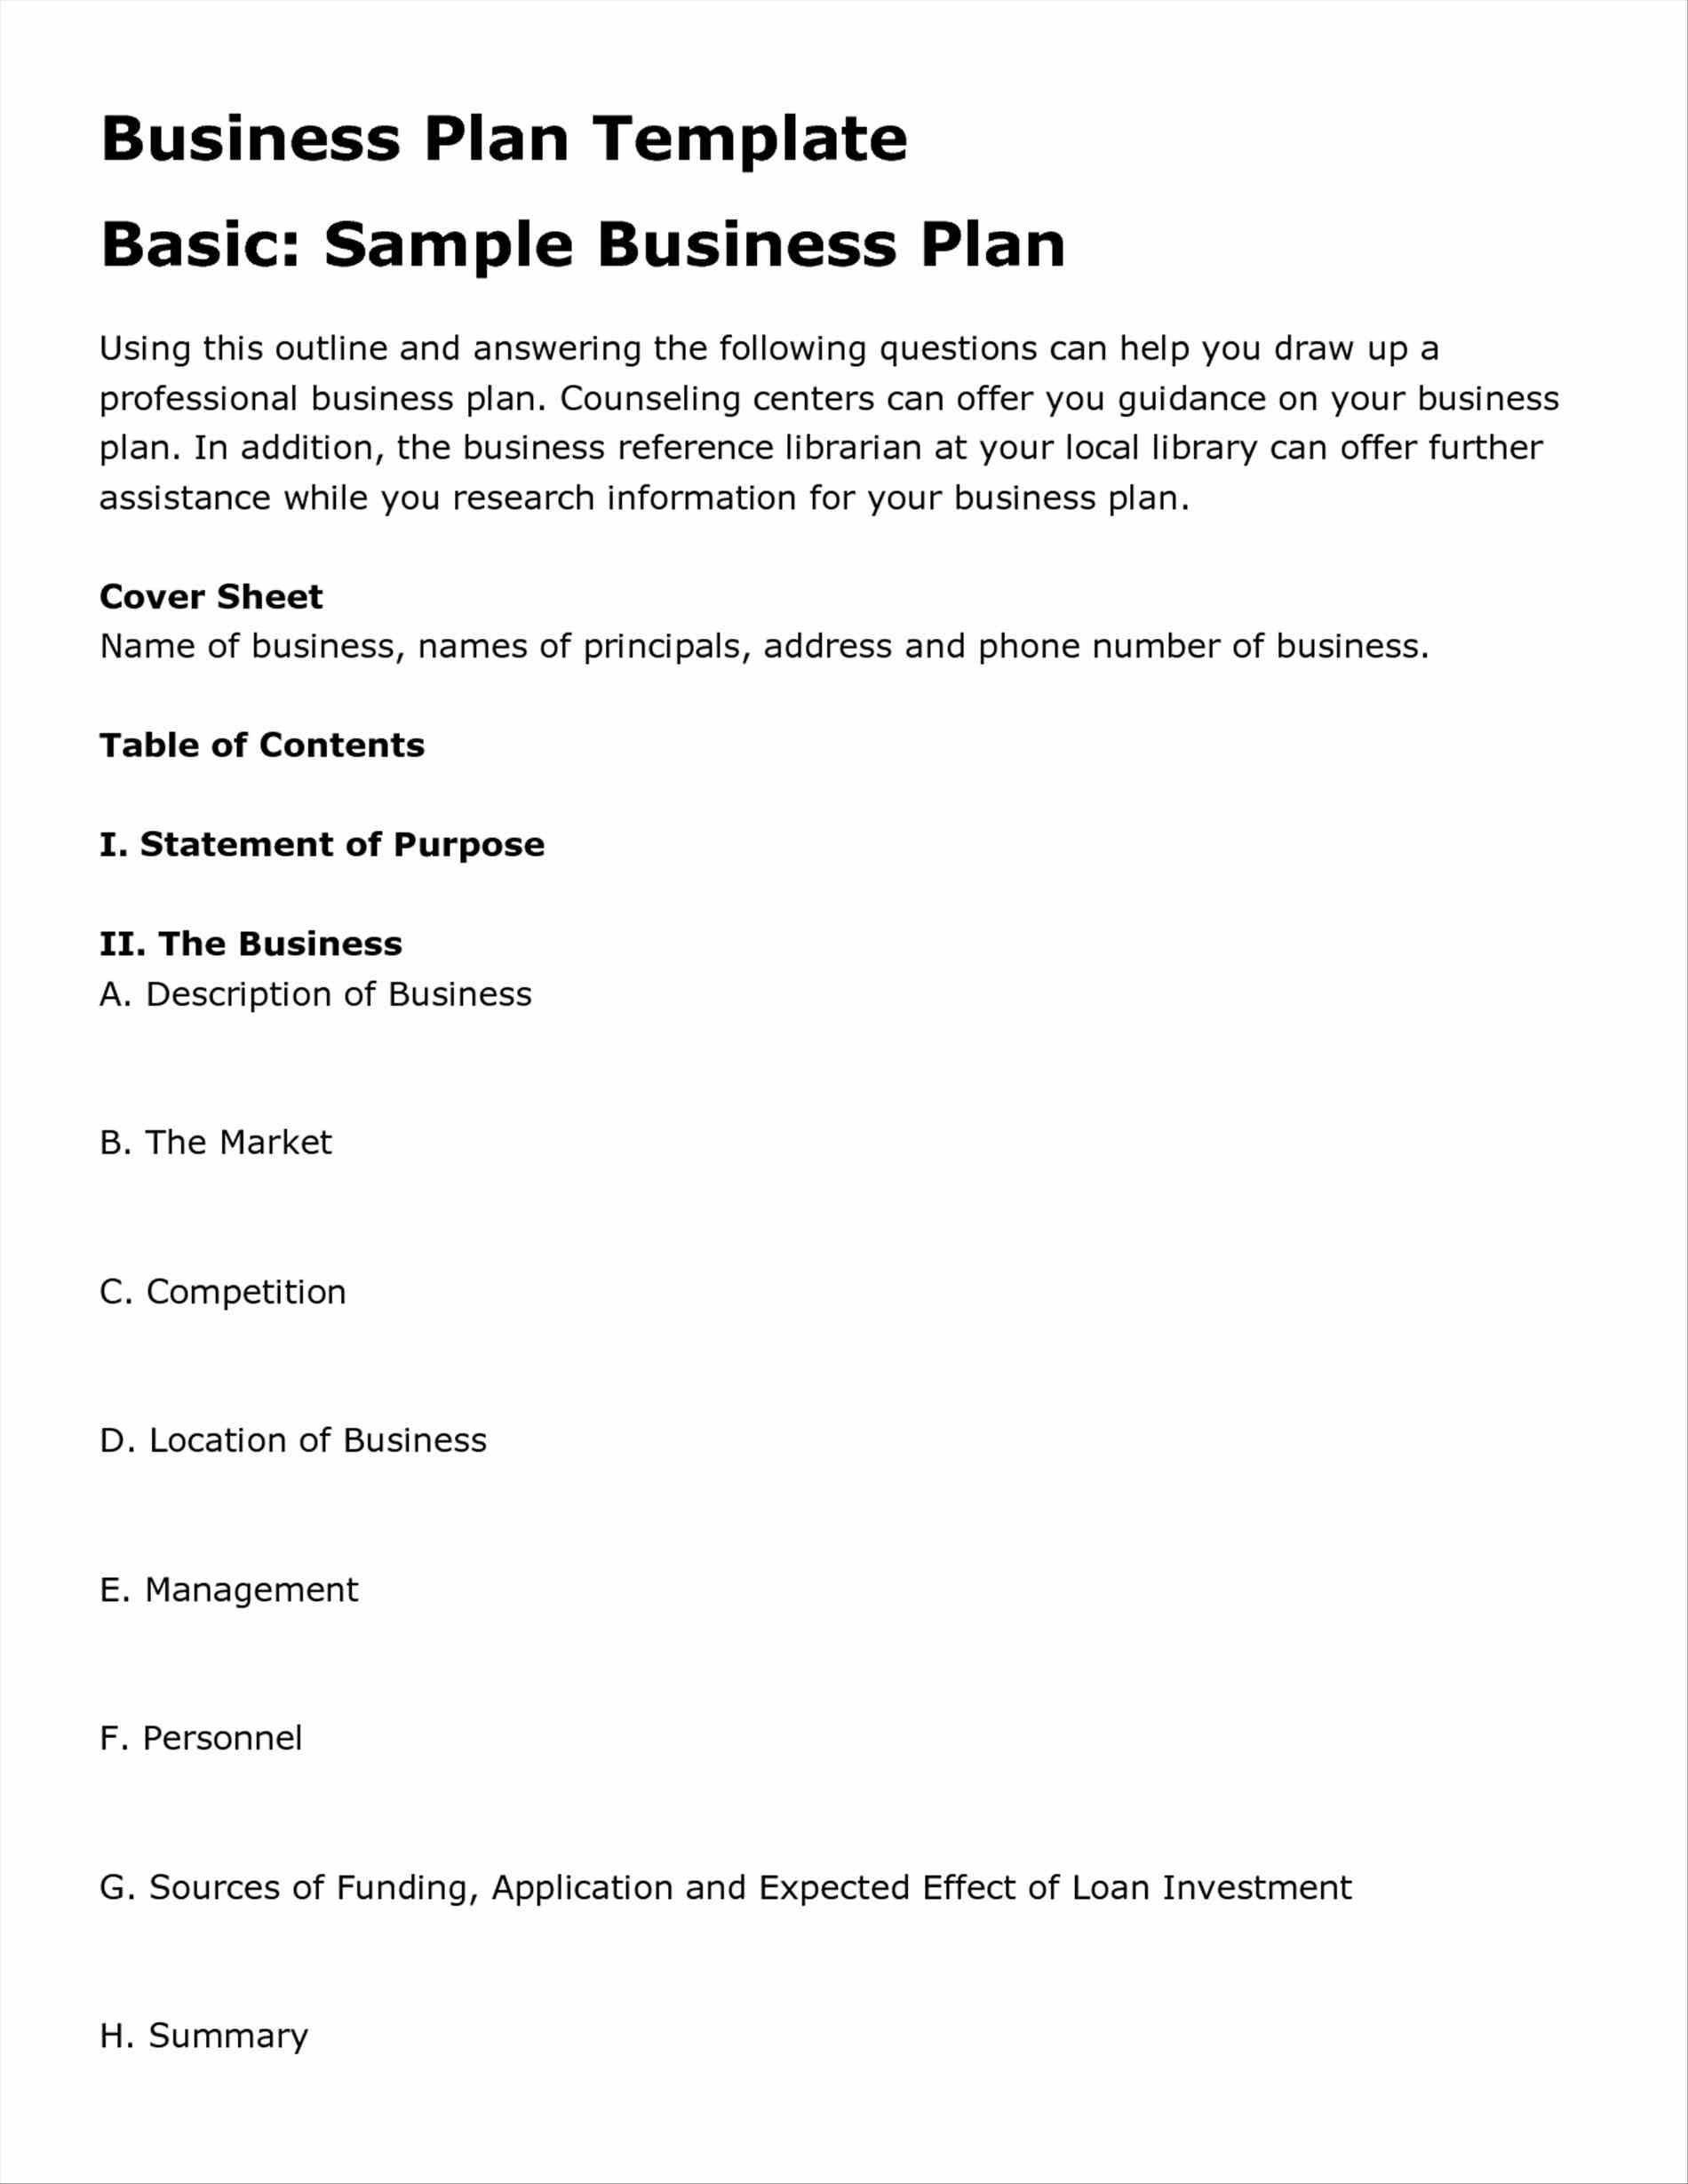 Business plan template restaurant templates in word excel pdf free business plan template restaurant templates in word excel pdf free cafe business plan template restaurant business plan templates in word excel accmission Image collections